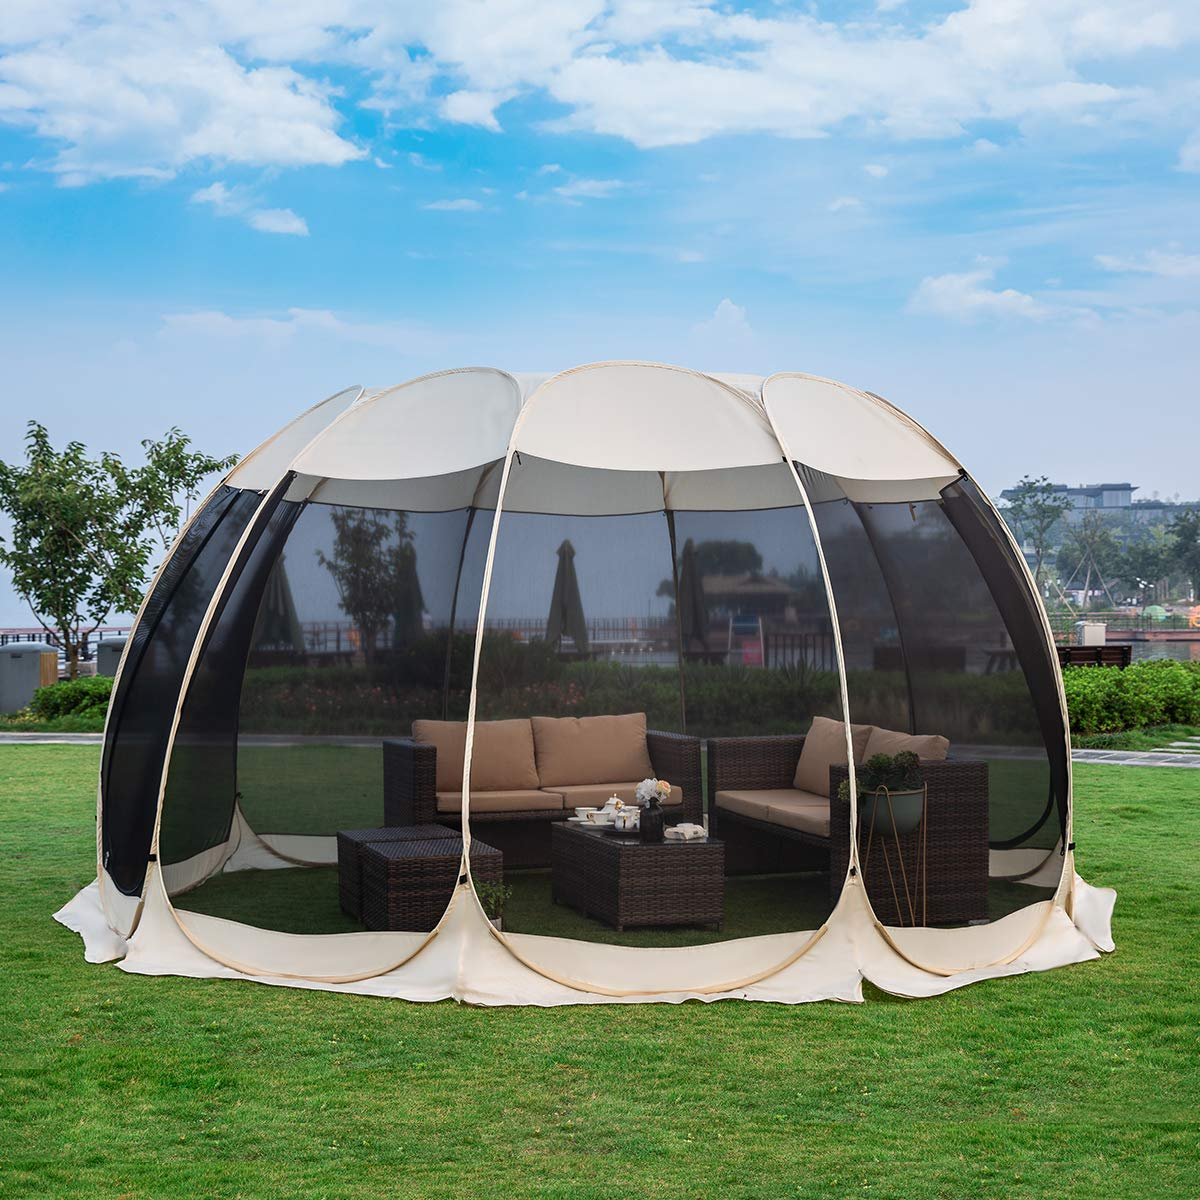 Alvantor Screen House Room Camping Tent Canopy Gazebos 8-20 Person for Patios, Large Oversize Weather Pod, Premium Greenhouse Instant Pop Up Tent, Snow and Rain Protection